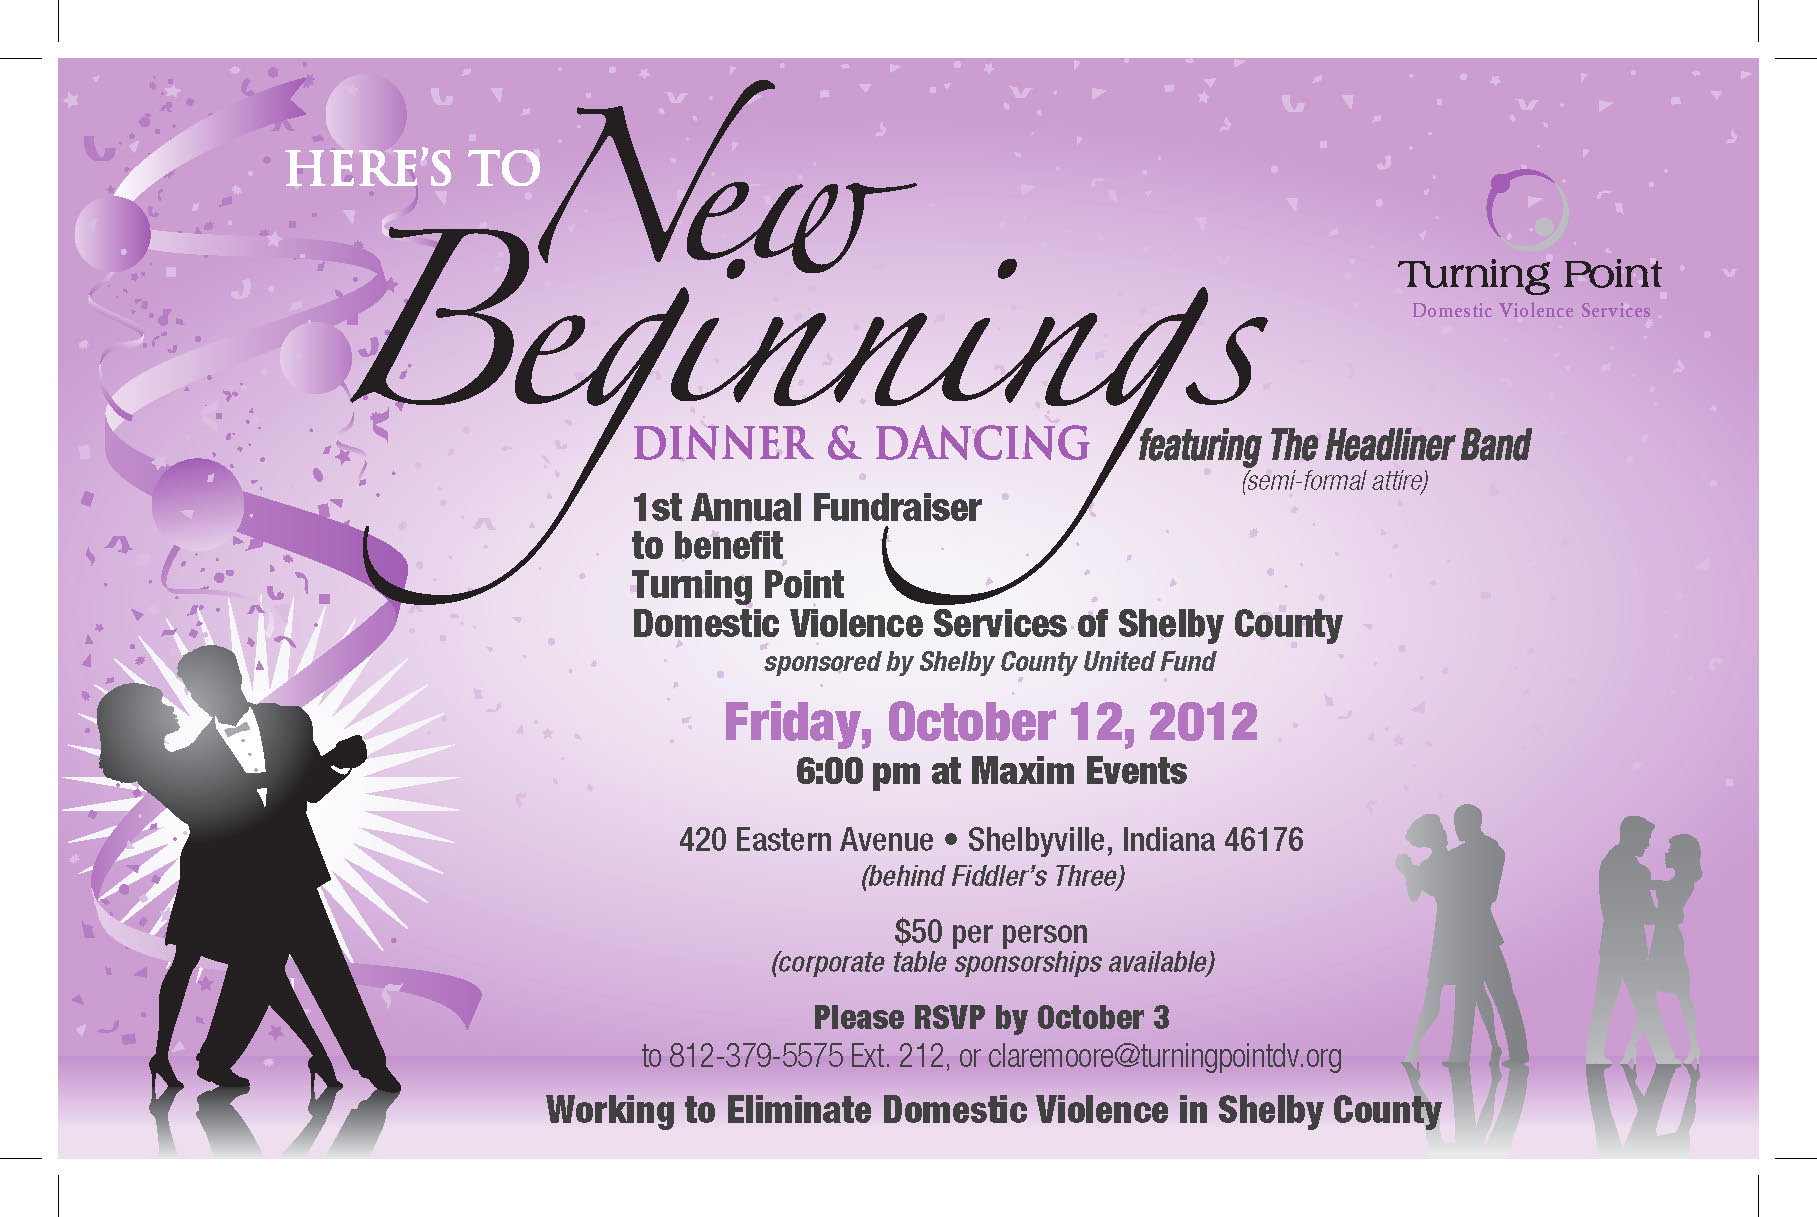 Here's to New Beginnings Dinner & Dancing 2012 flier